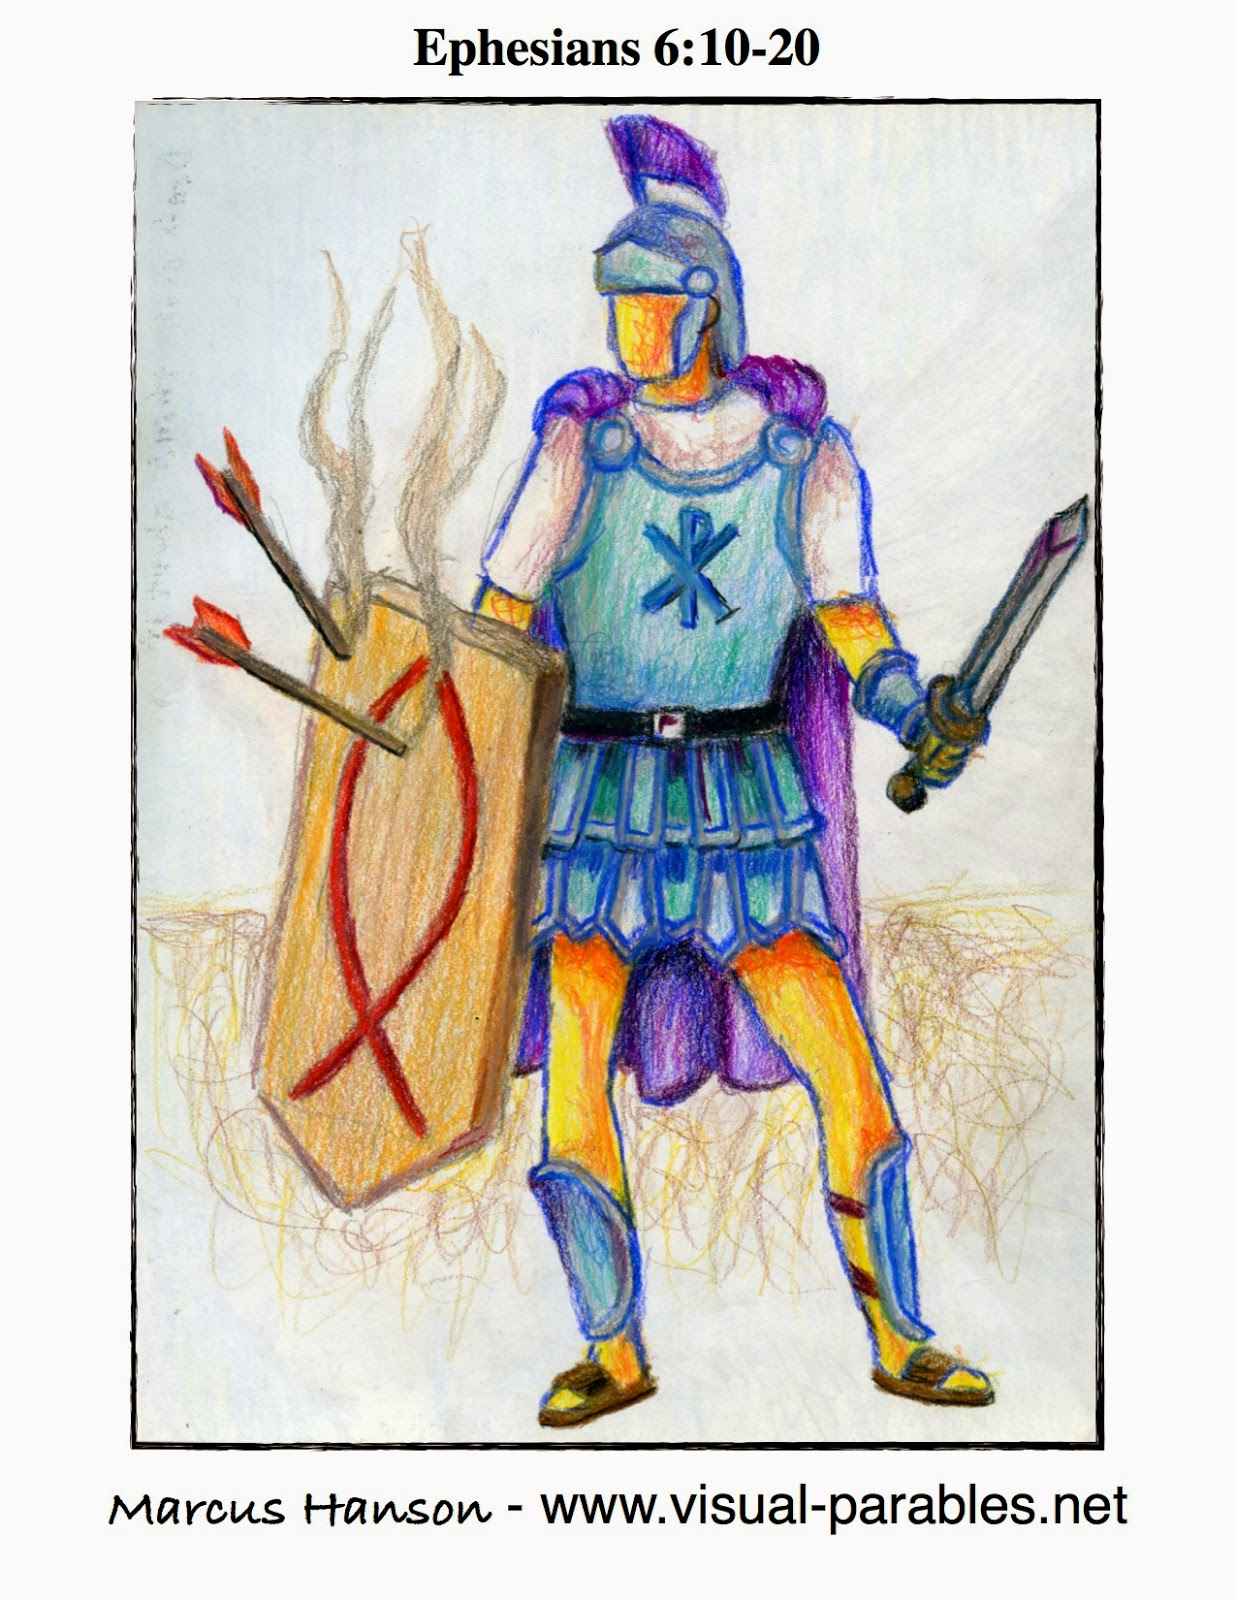 a Godly warrior in the armor of God